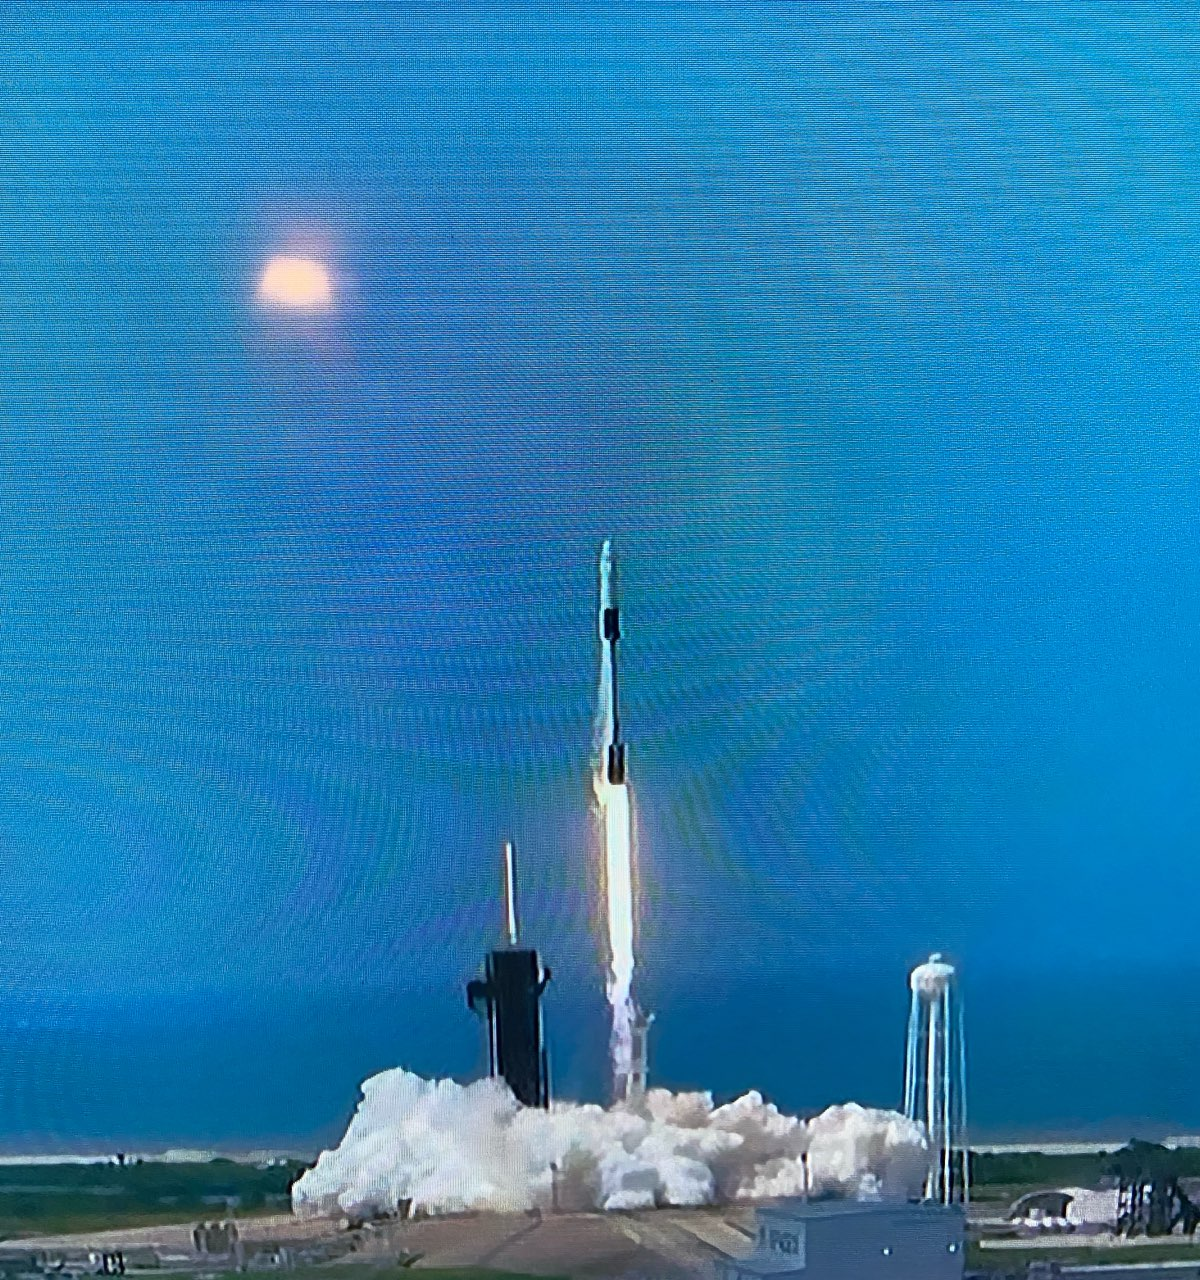 Blast Off: SpaceX rocket heads to space - The Monitor